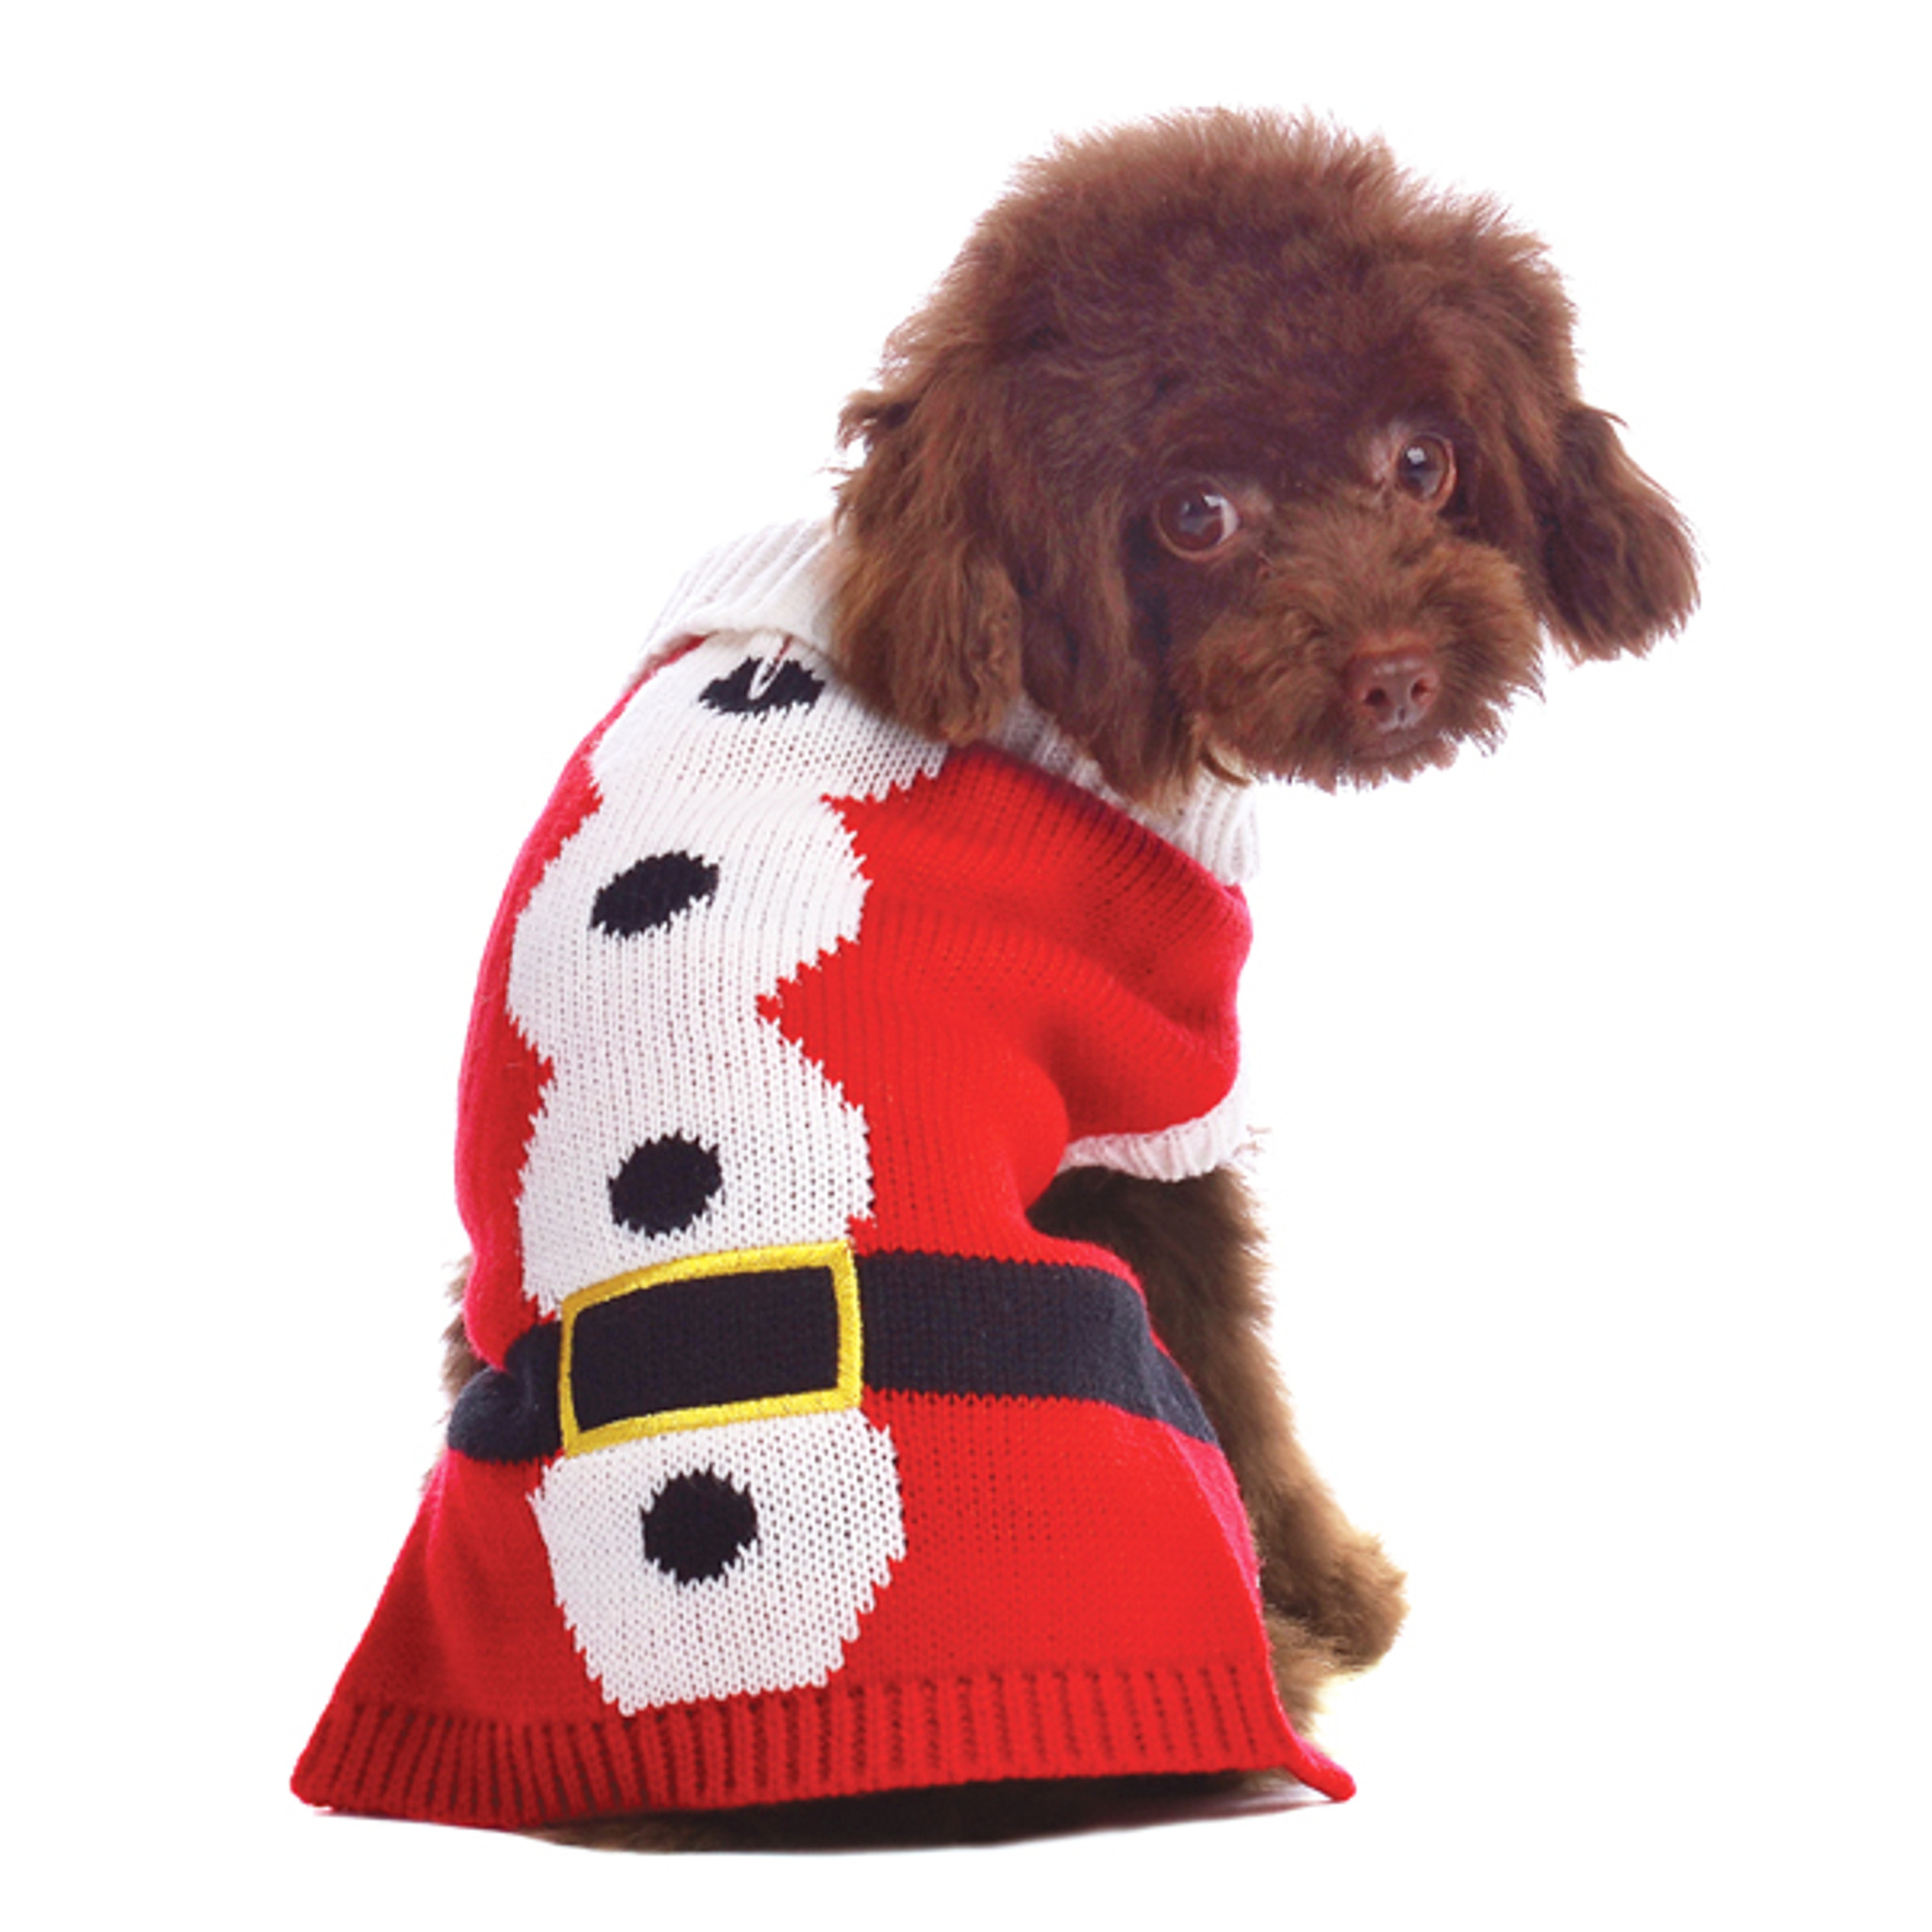 Christmas Sweaters For Dogs.Christmas Santa Sweater